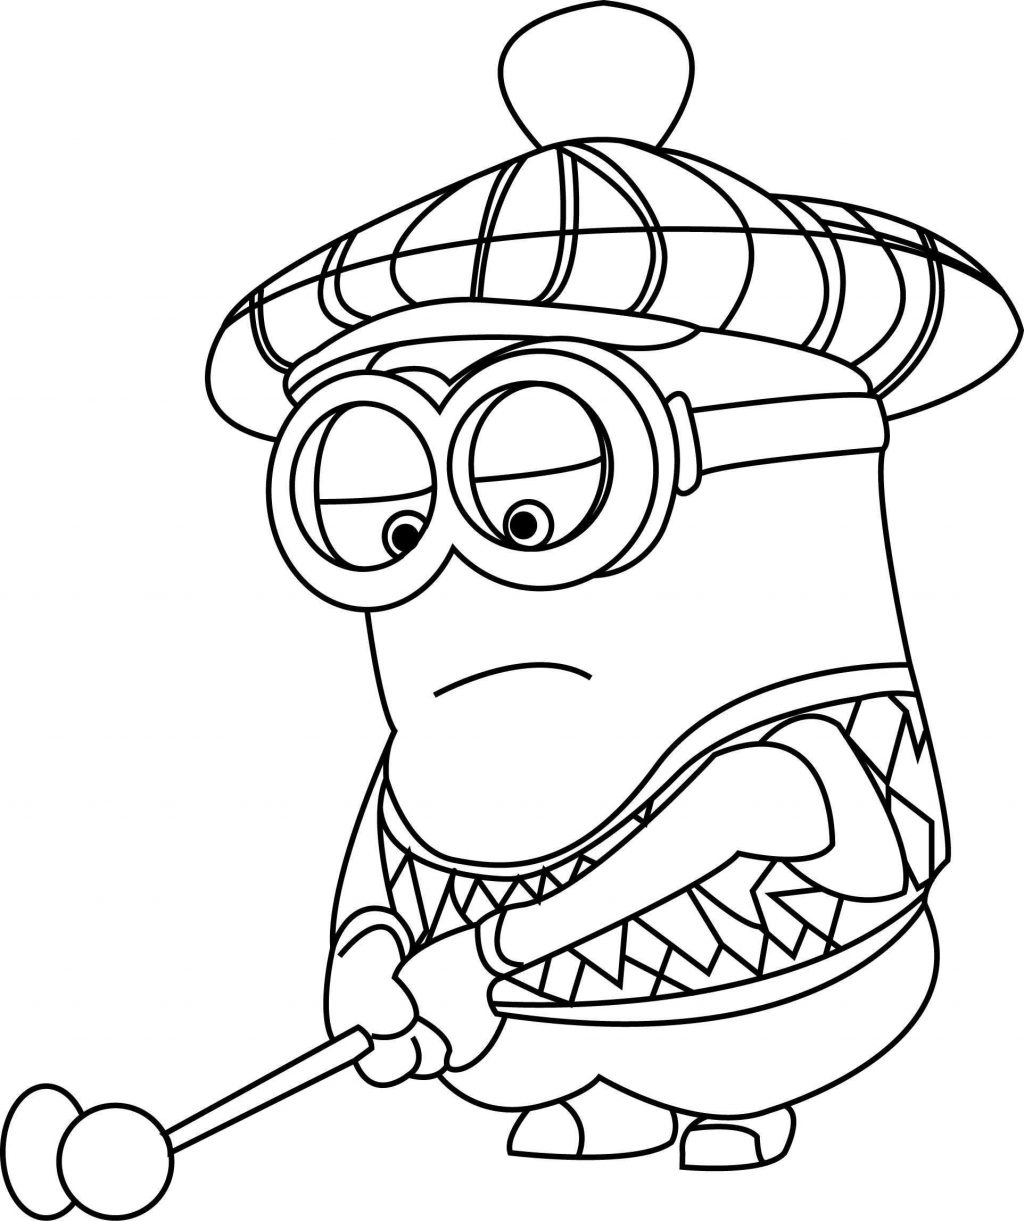 minions drawing minion drawing template at getdrawings free download drawing minions